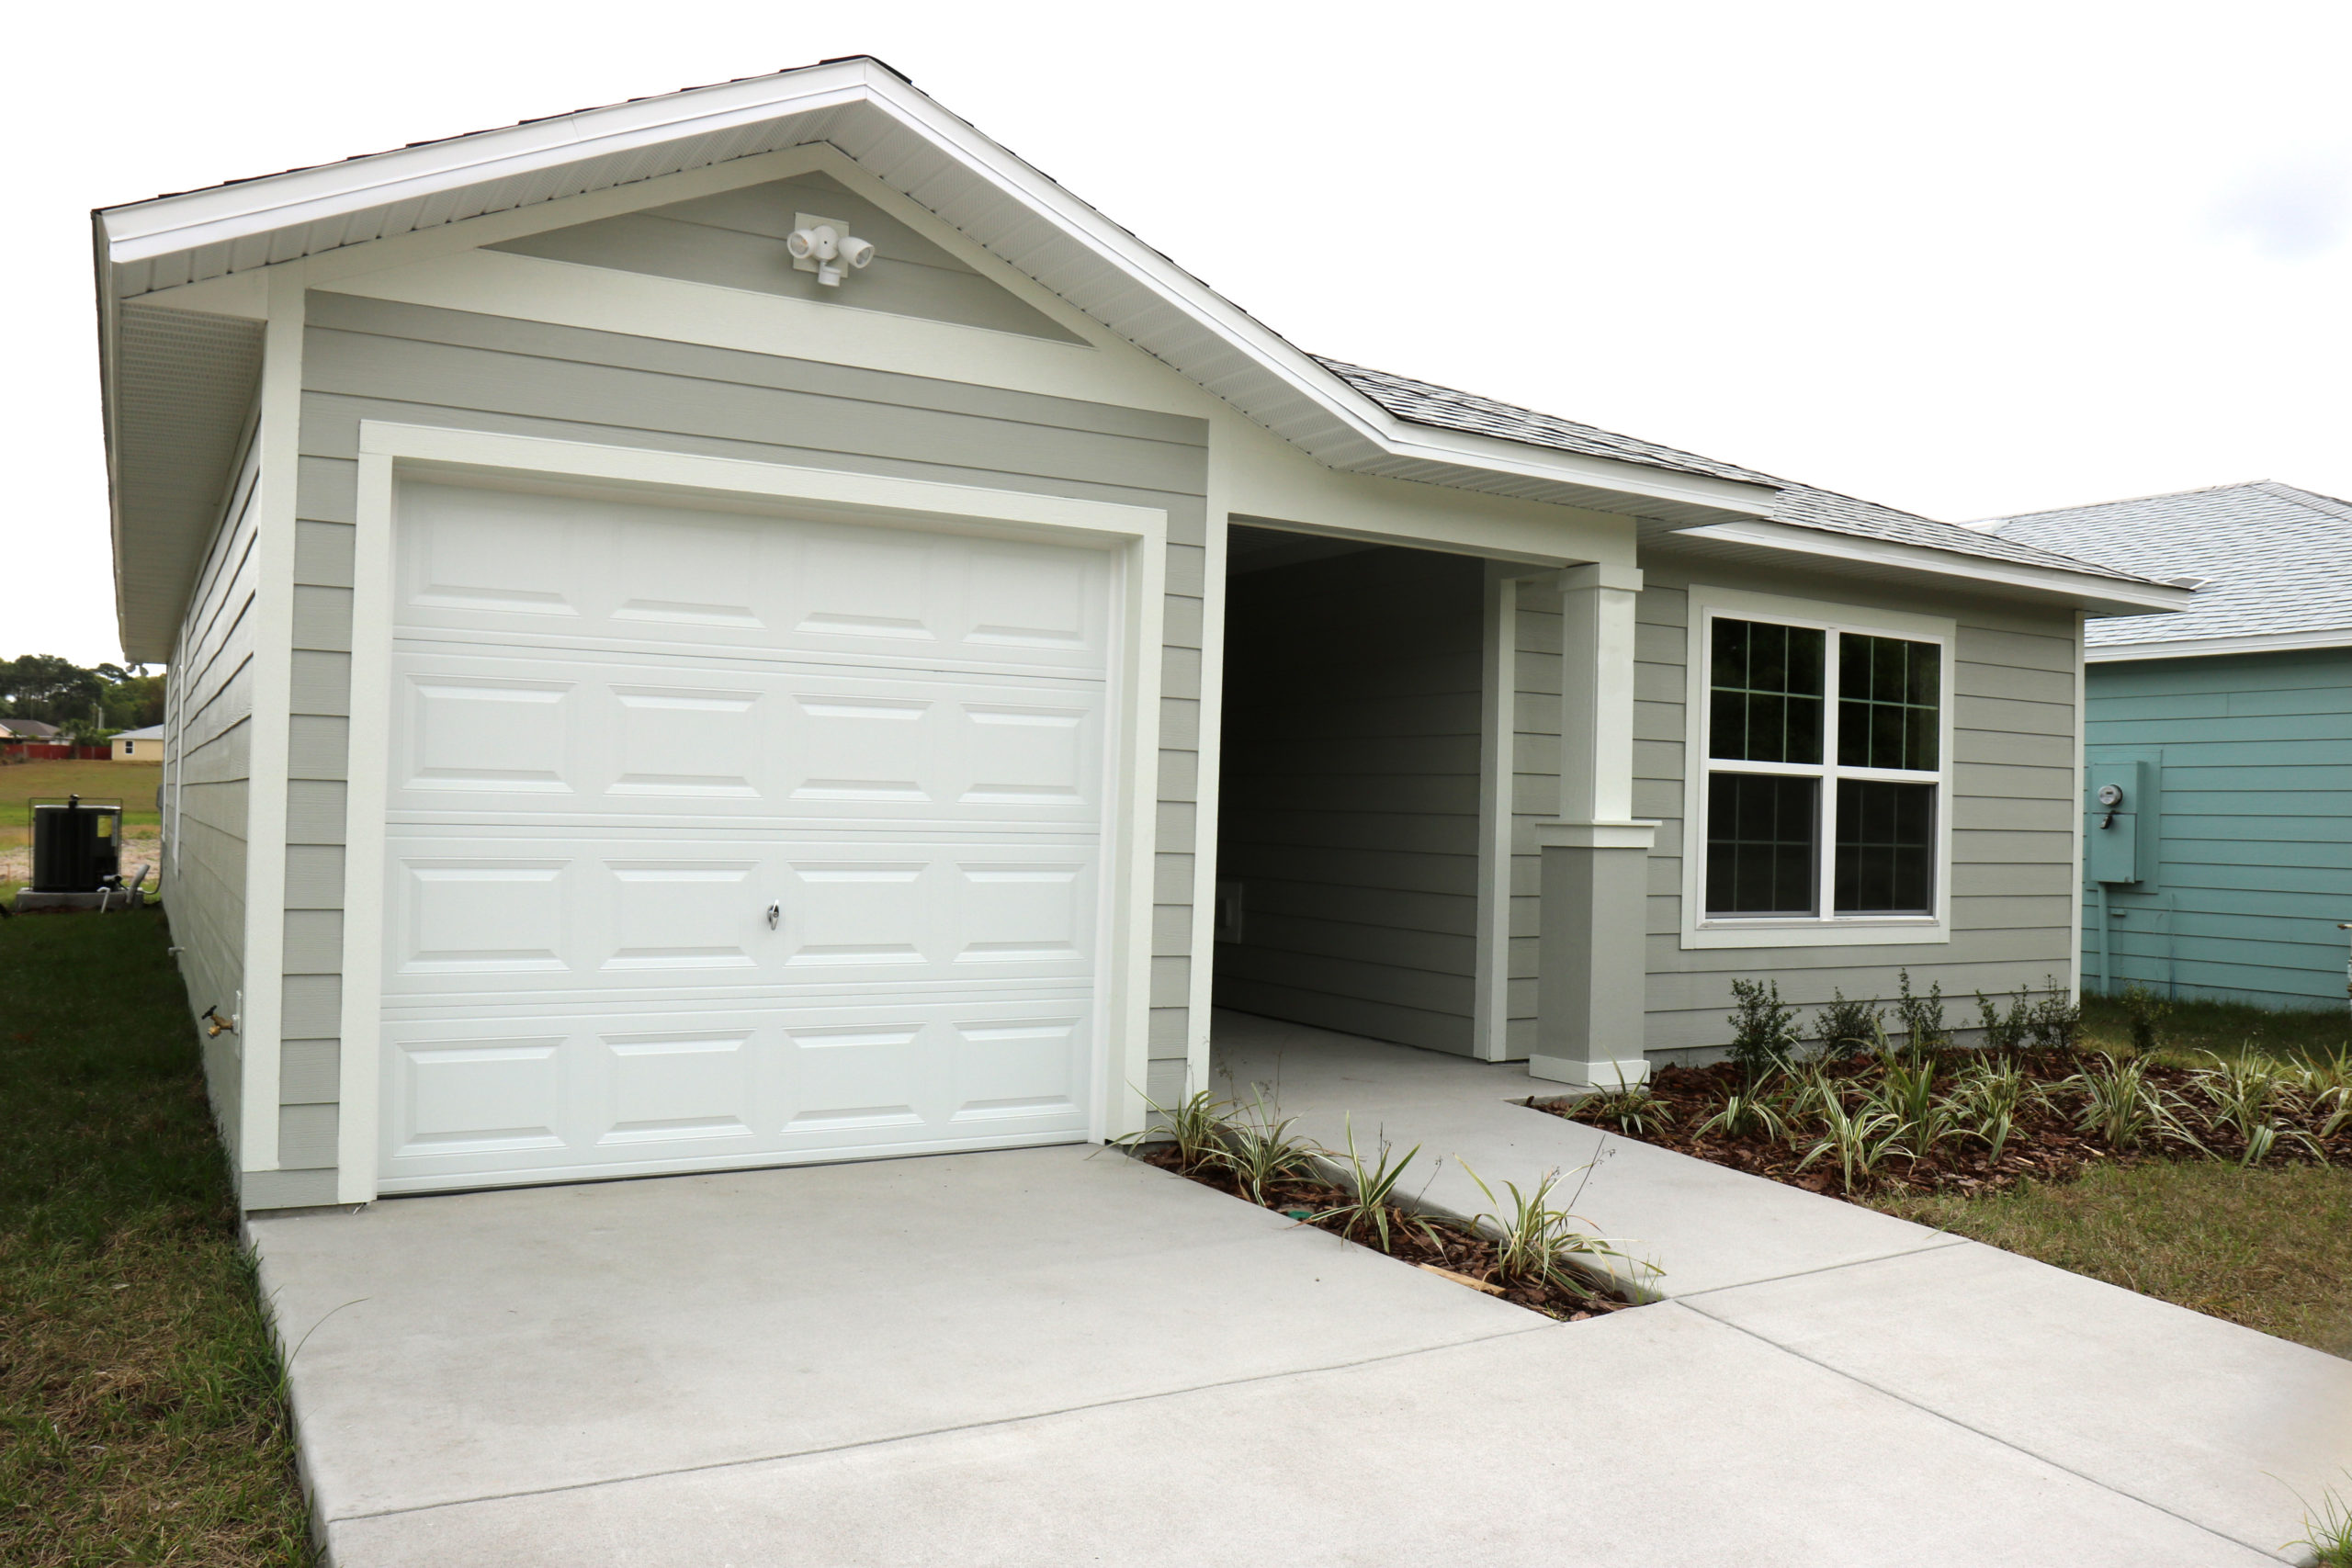 The front of a gray home in the Habitat Orlando community of Silver Pines Pointe.